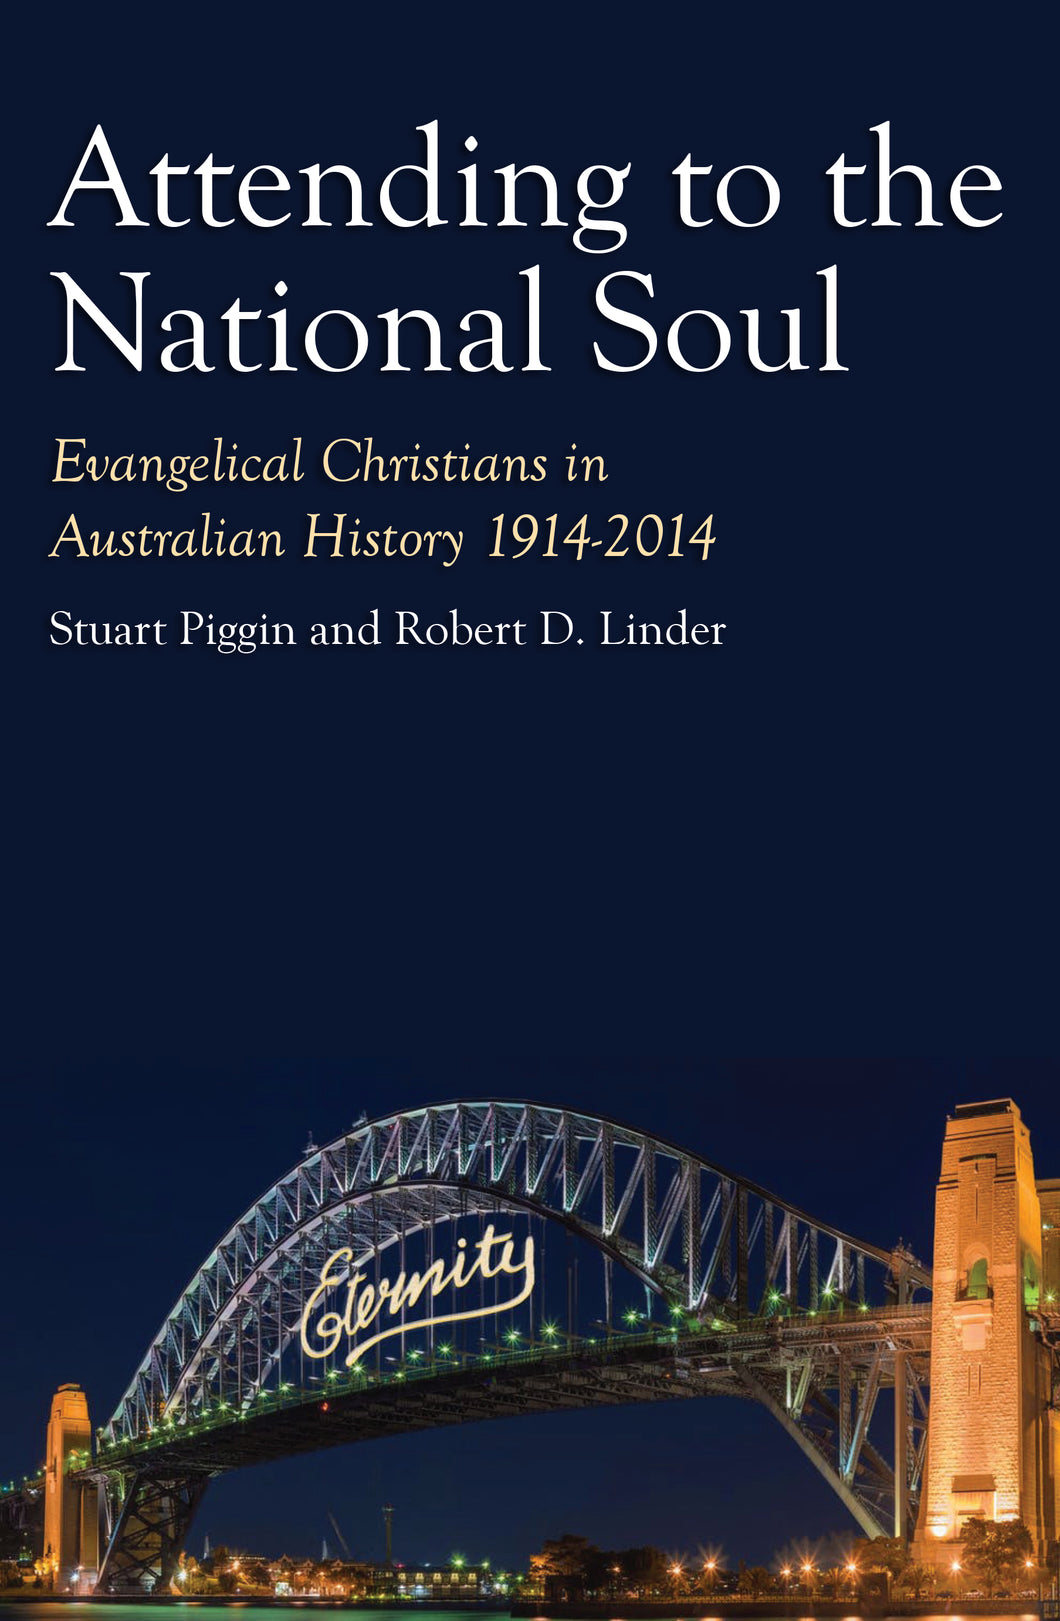 Attending to the National Soul - Stuart Piggin and Robert Linder